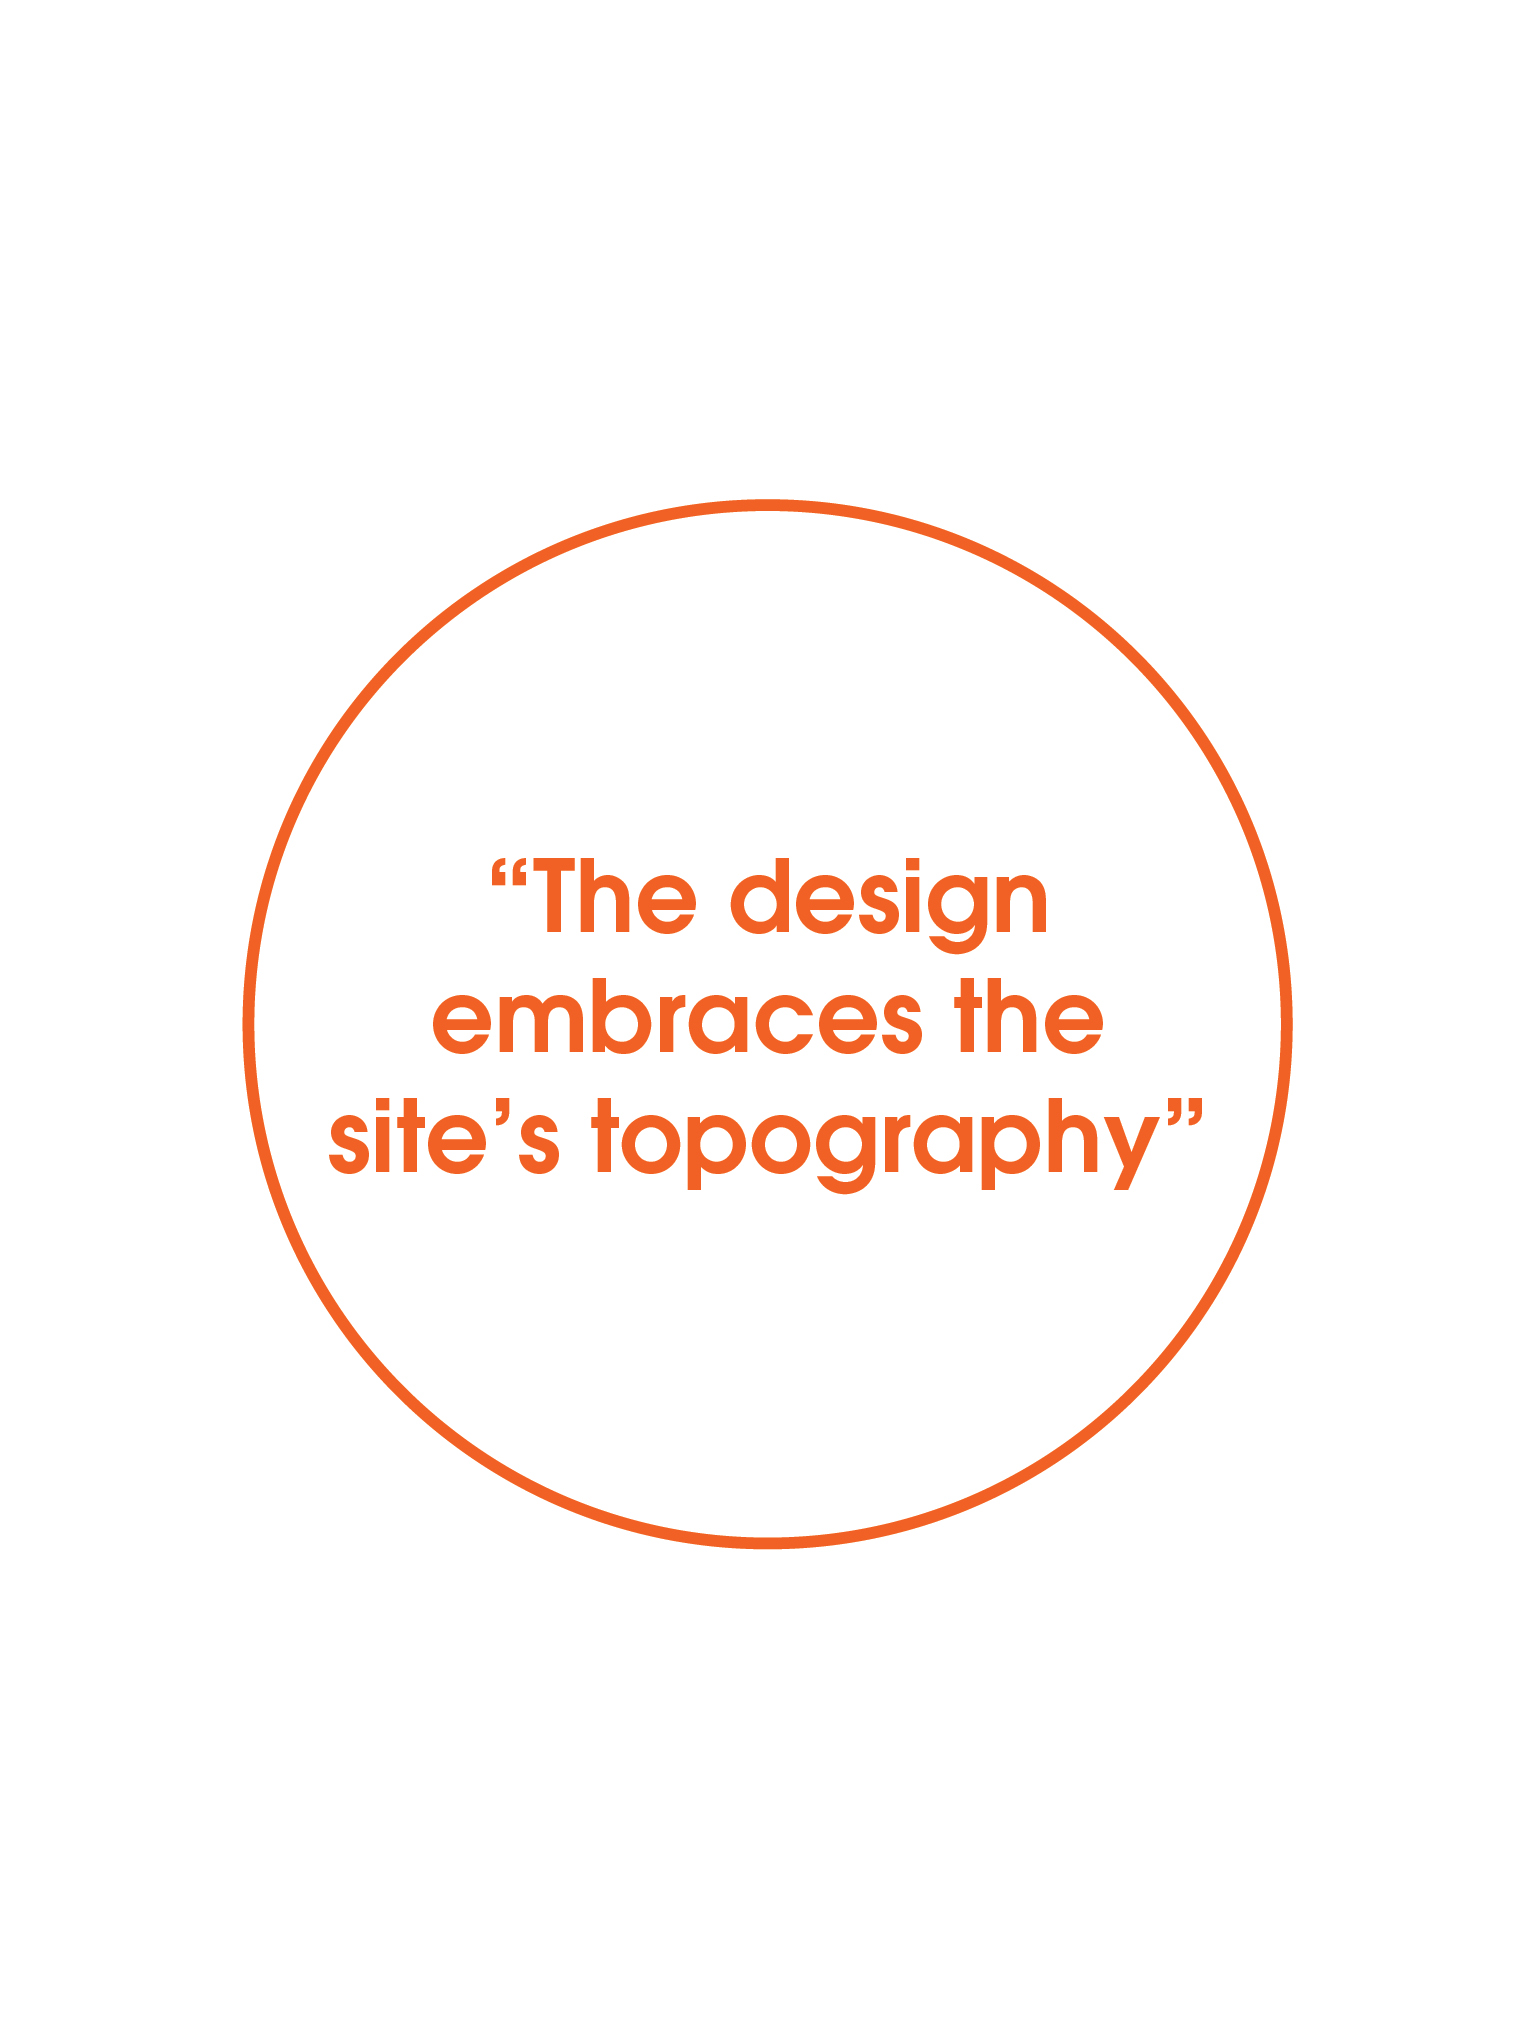 the design embraces the site's topography quote